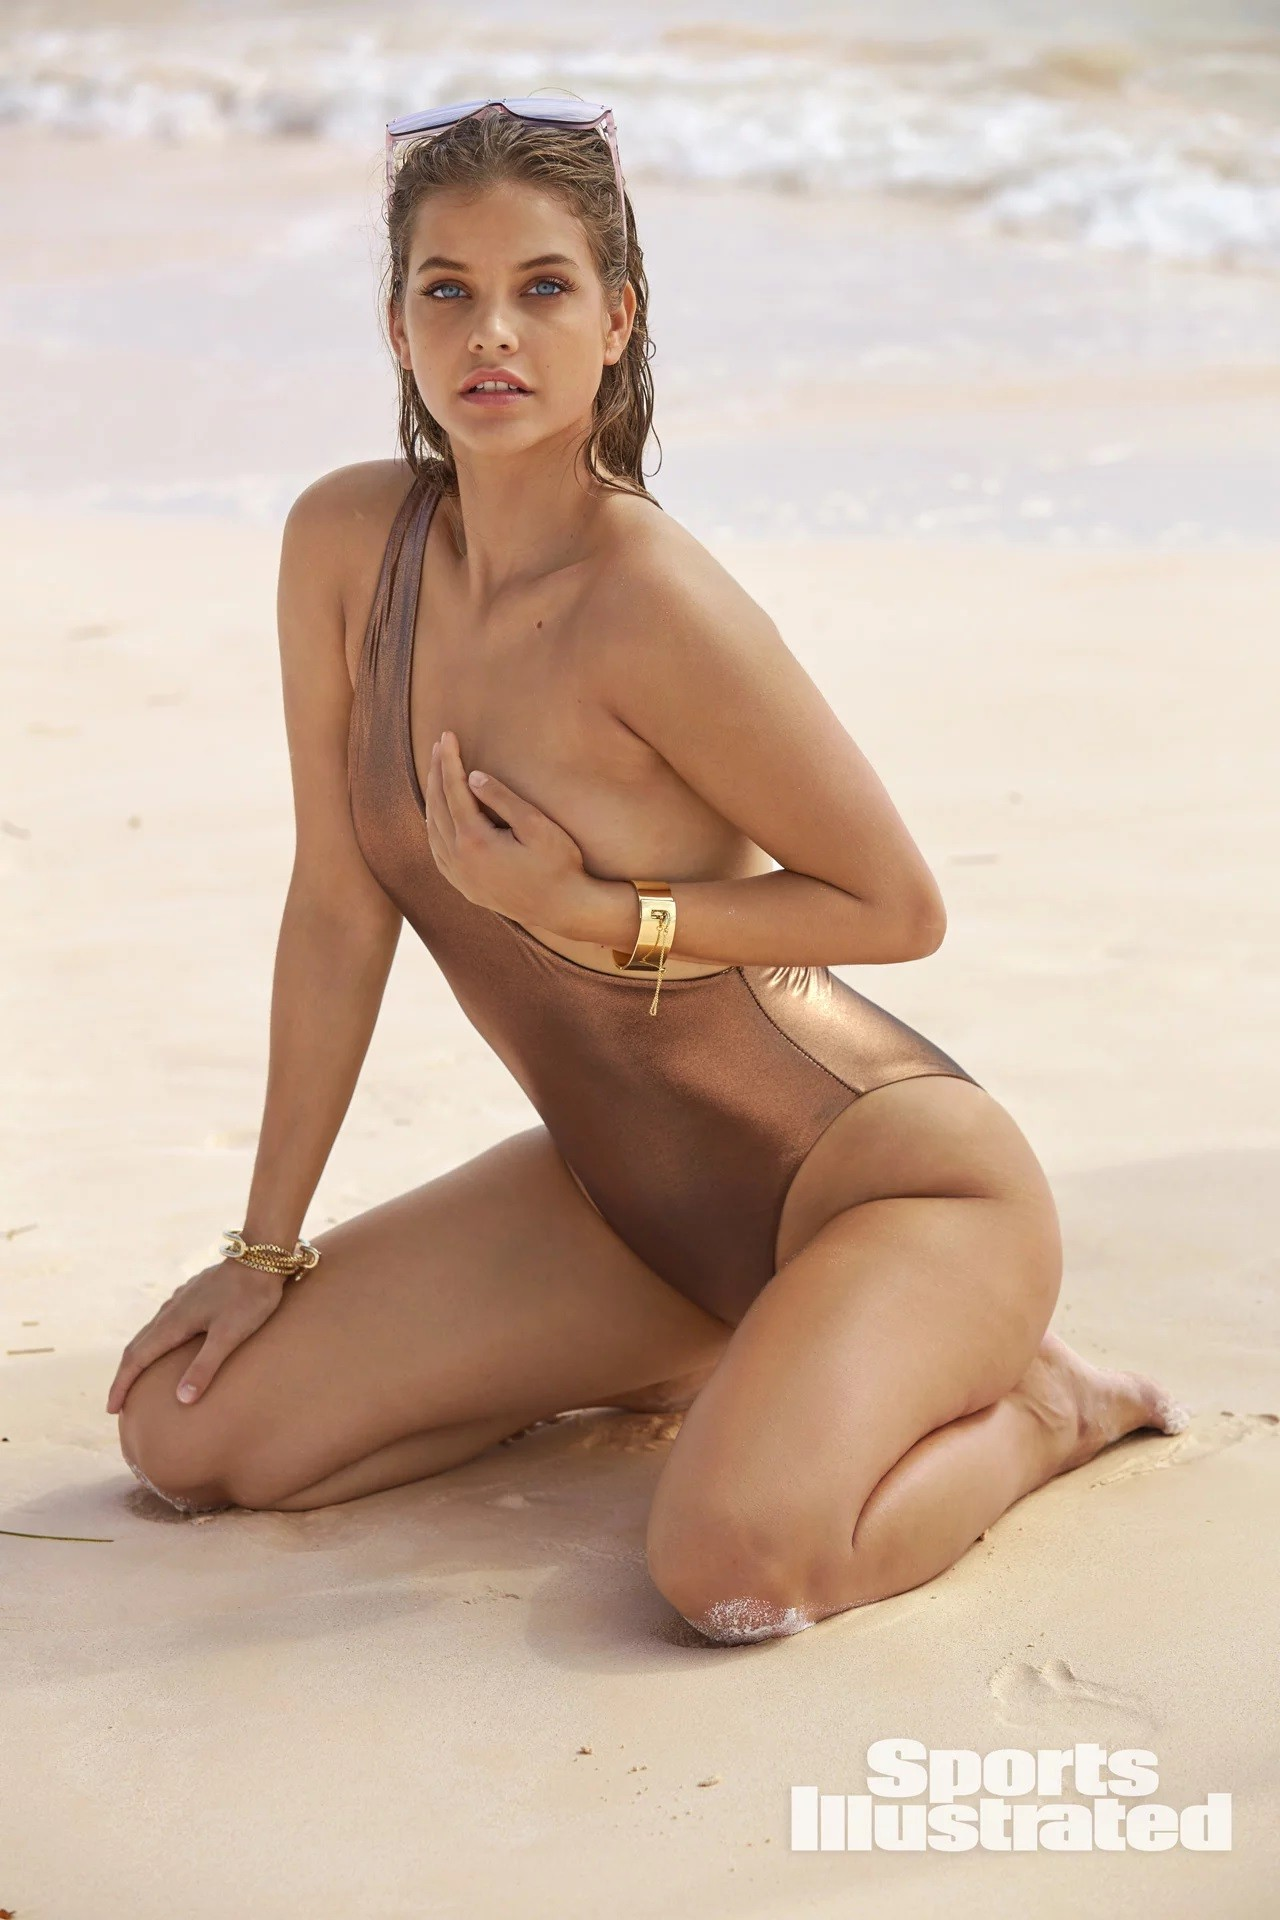 Hot Barbara Palvin - Sports Illustrated 2018 Photos - Sexy Actress Pictures | Hot Actress Pictures - ActressSnaps.com